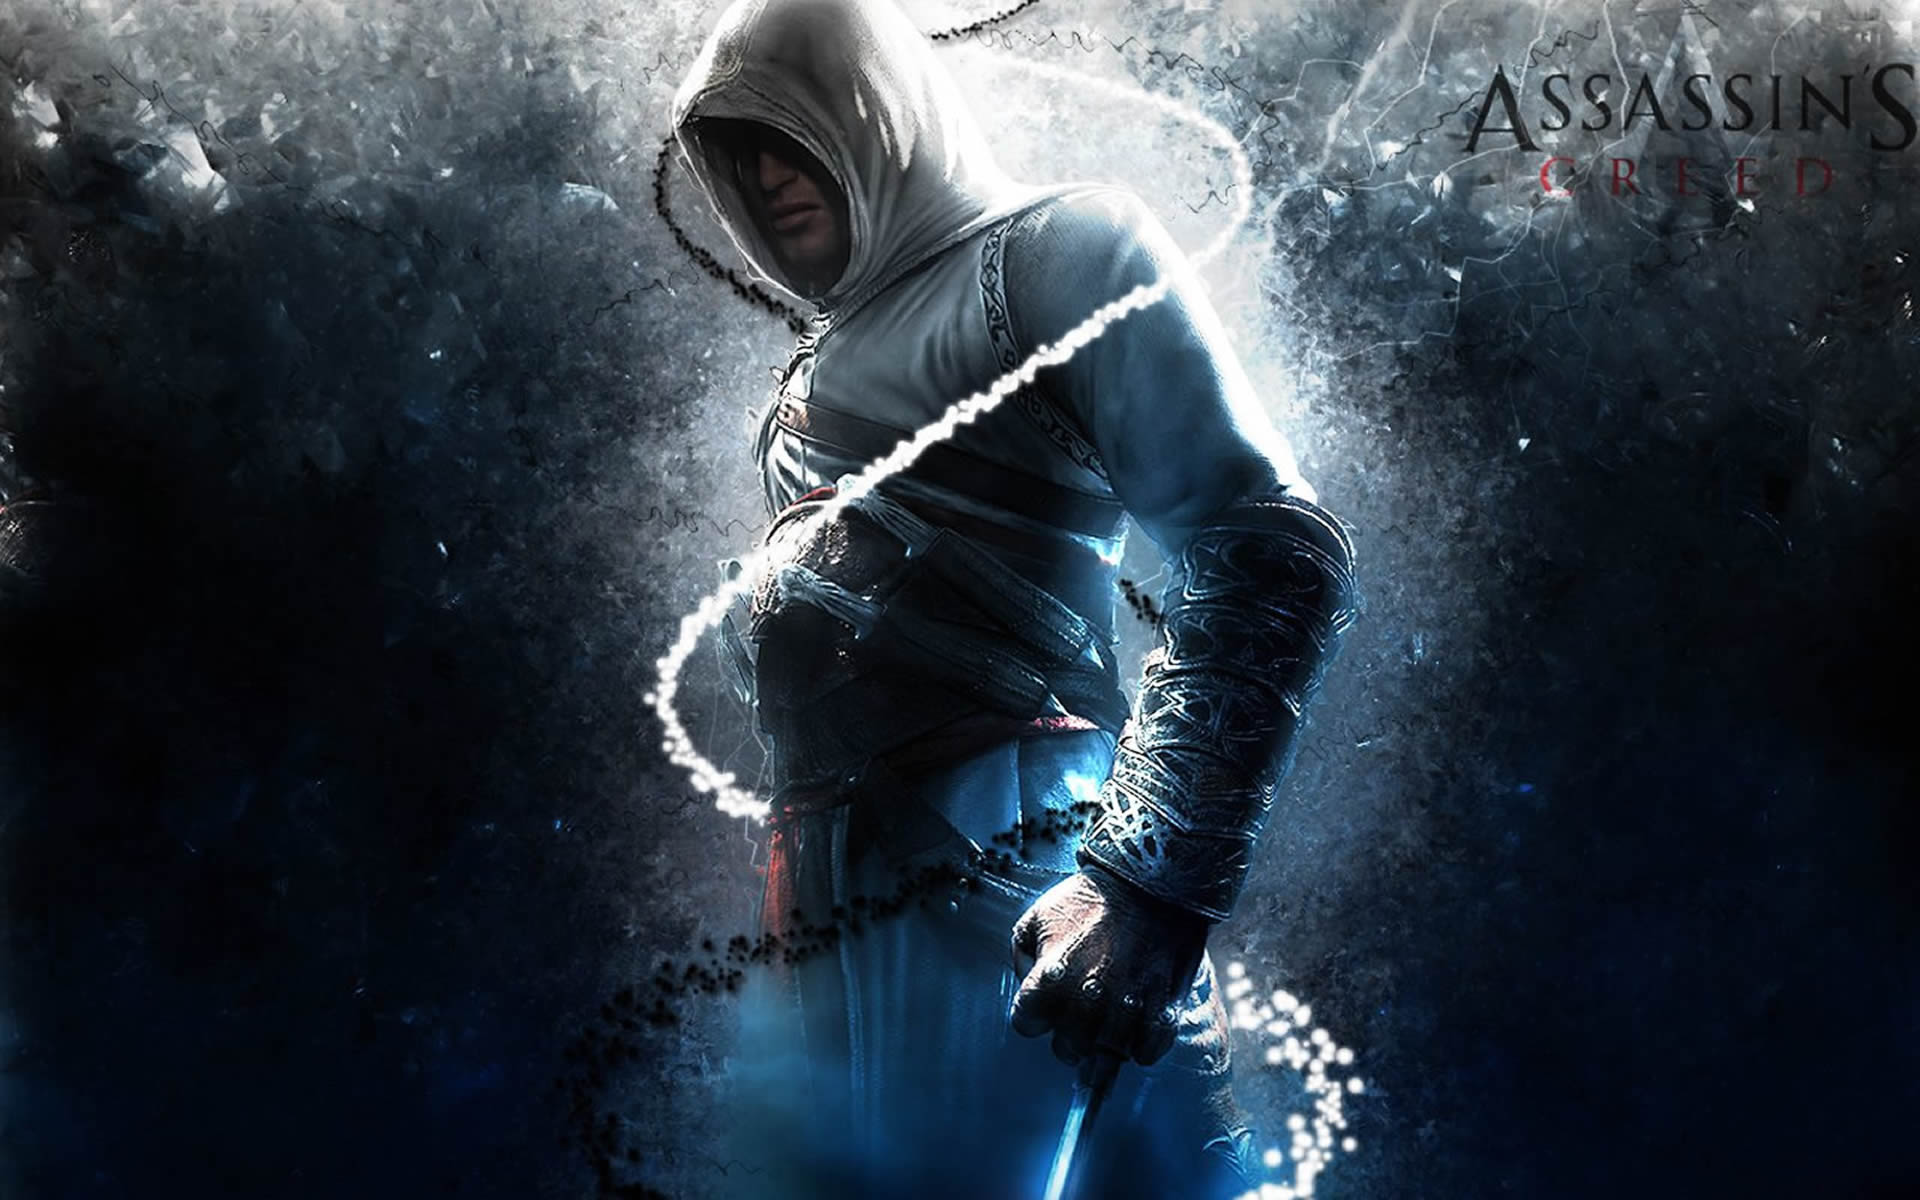 Free Download Altair The Assassins Wallpaper 32687175 1920x1200